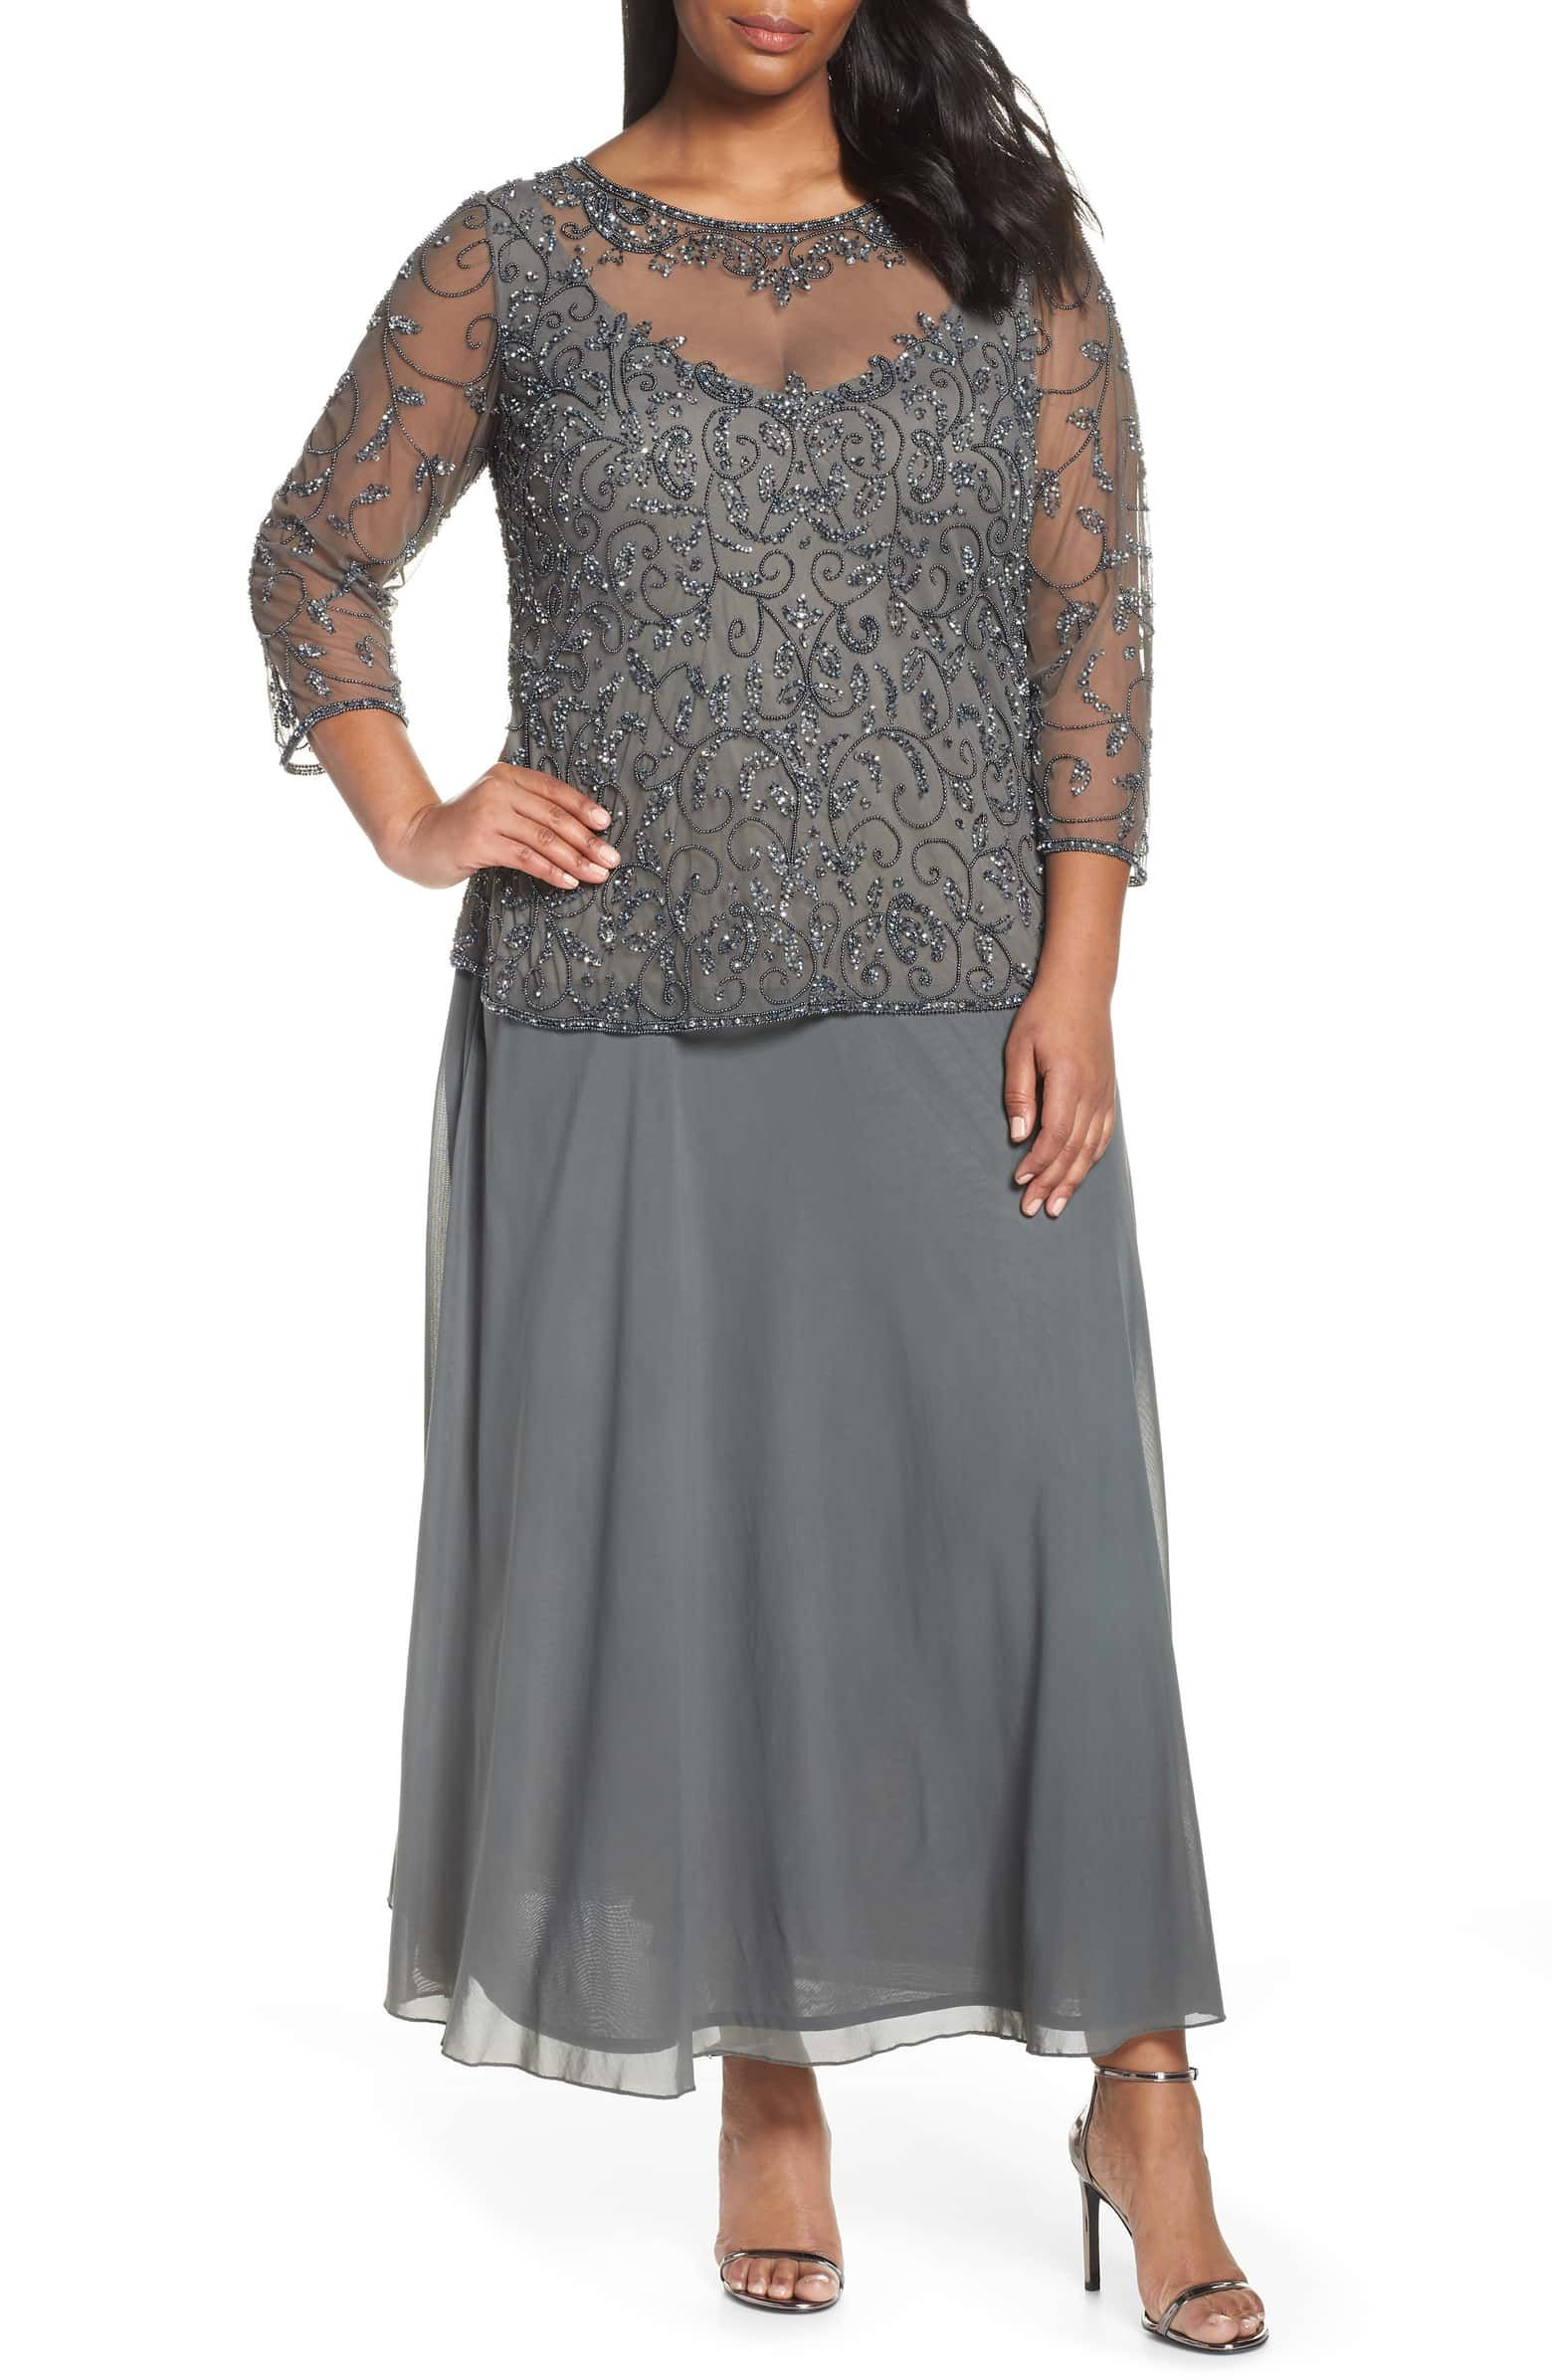 a22e73e0ff02 Pissaro Nights Beaded Mesh Mock Two-Piece Gown, Main, color, GREY ...